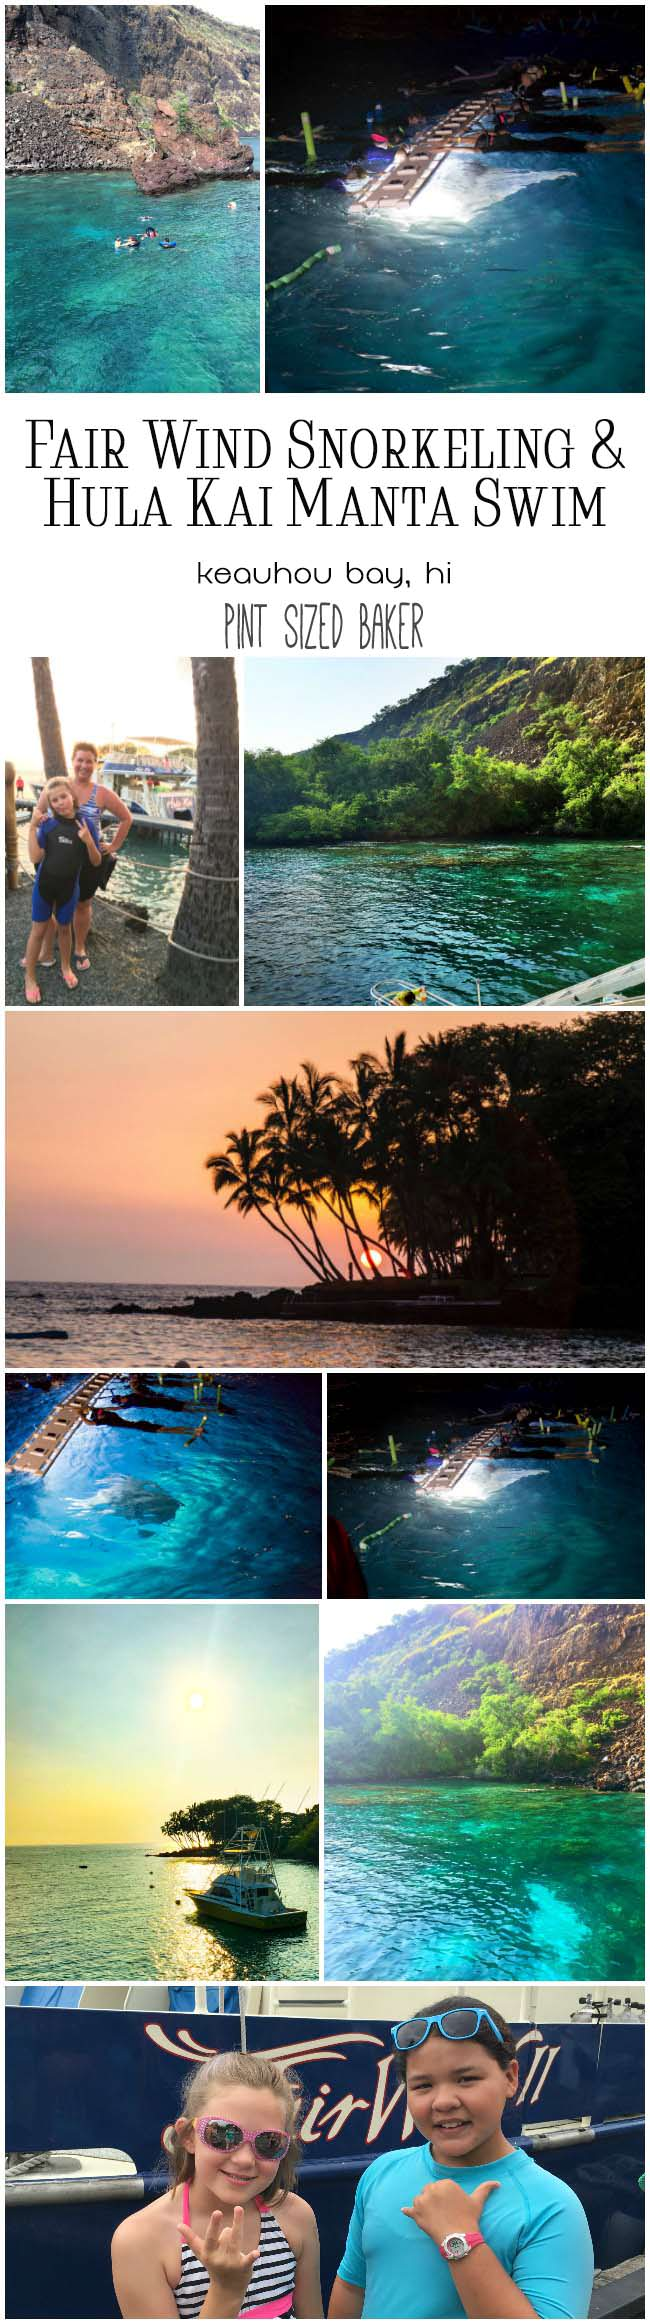 When you visit Kailua-Kona you must check out Fair Winds for great snorkeling, dolphin watching, and swimming with the manta rays at night. WOW!